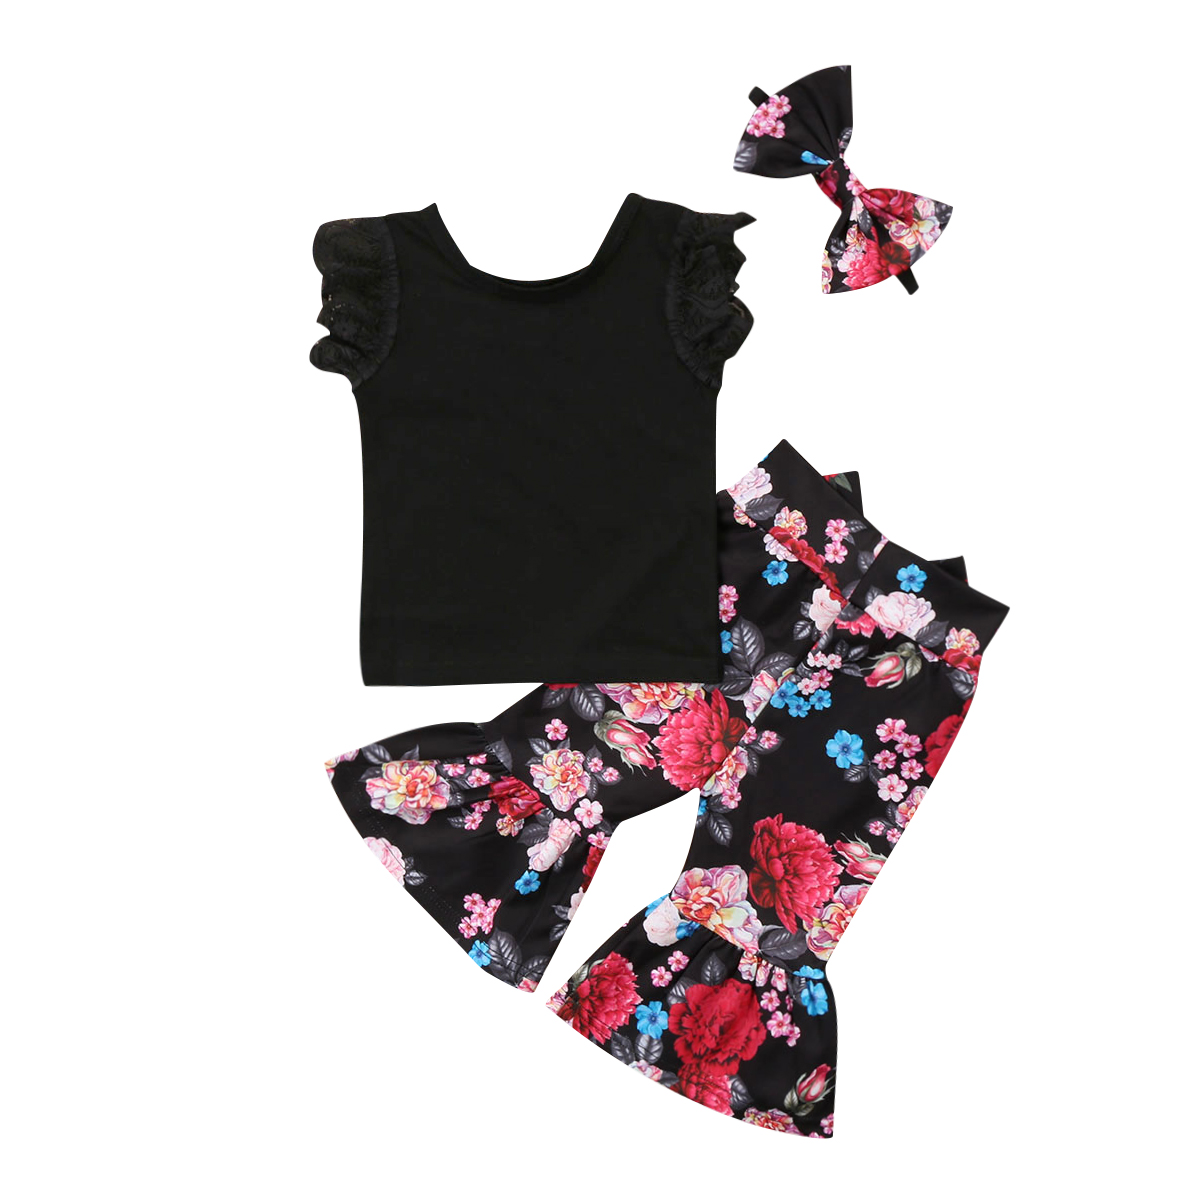 3Pcs Toddled Kids Baby Girls Lace Short Sleeve Solid T Shirt Floral Flare Pants Bow Headband Outfits Set Clothes Spring Summer